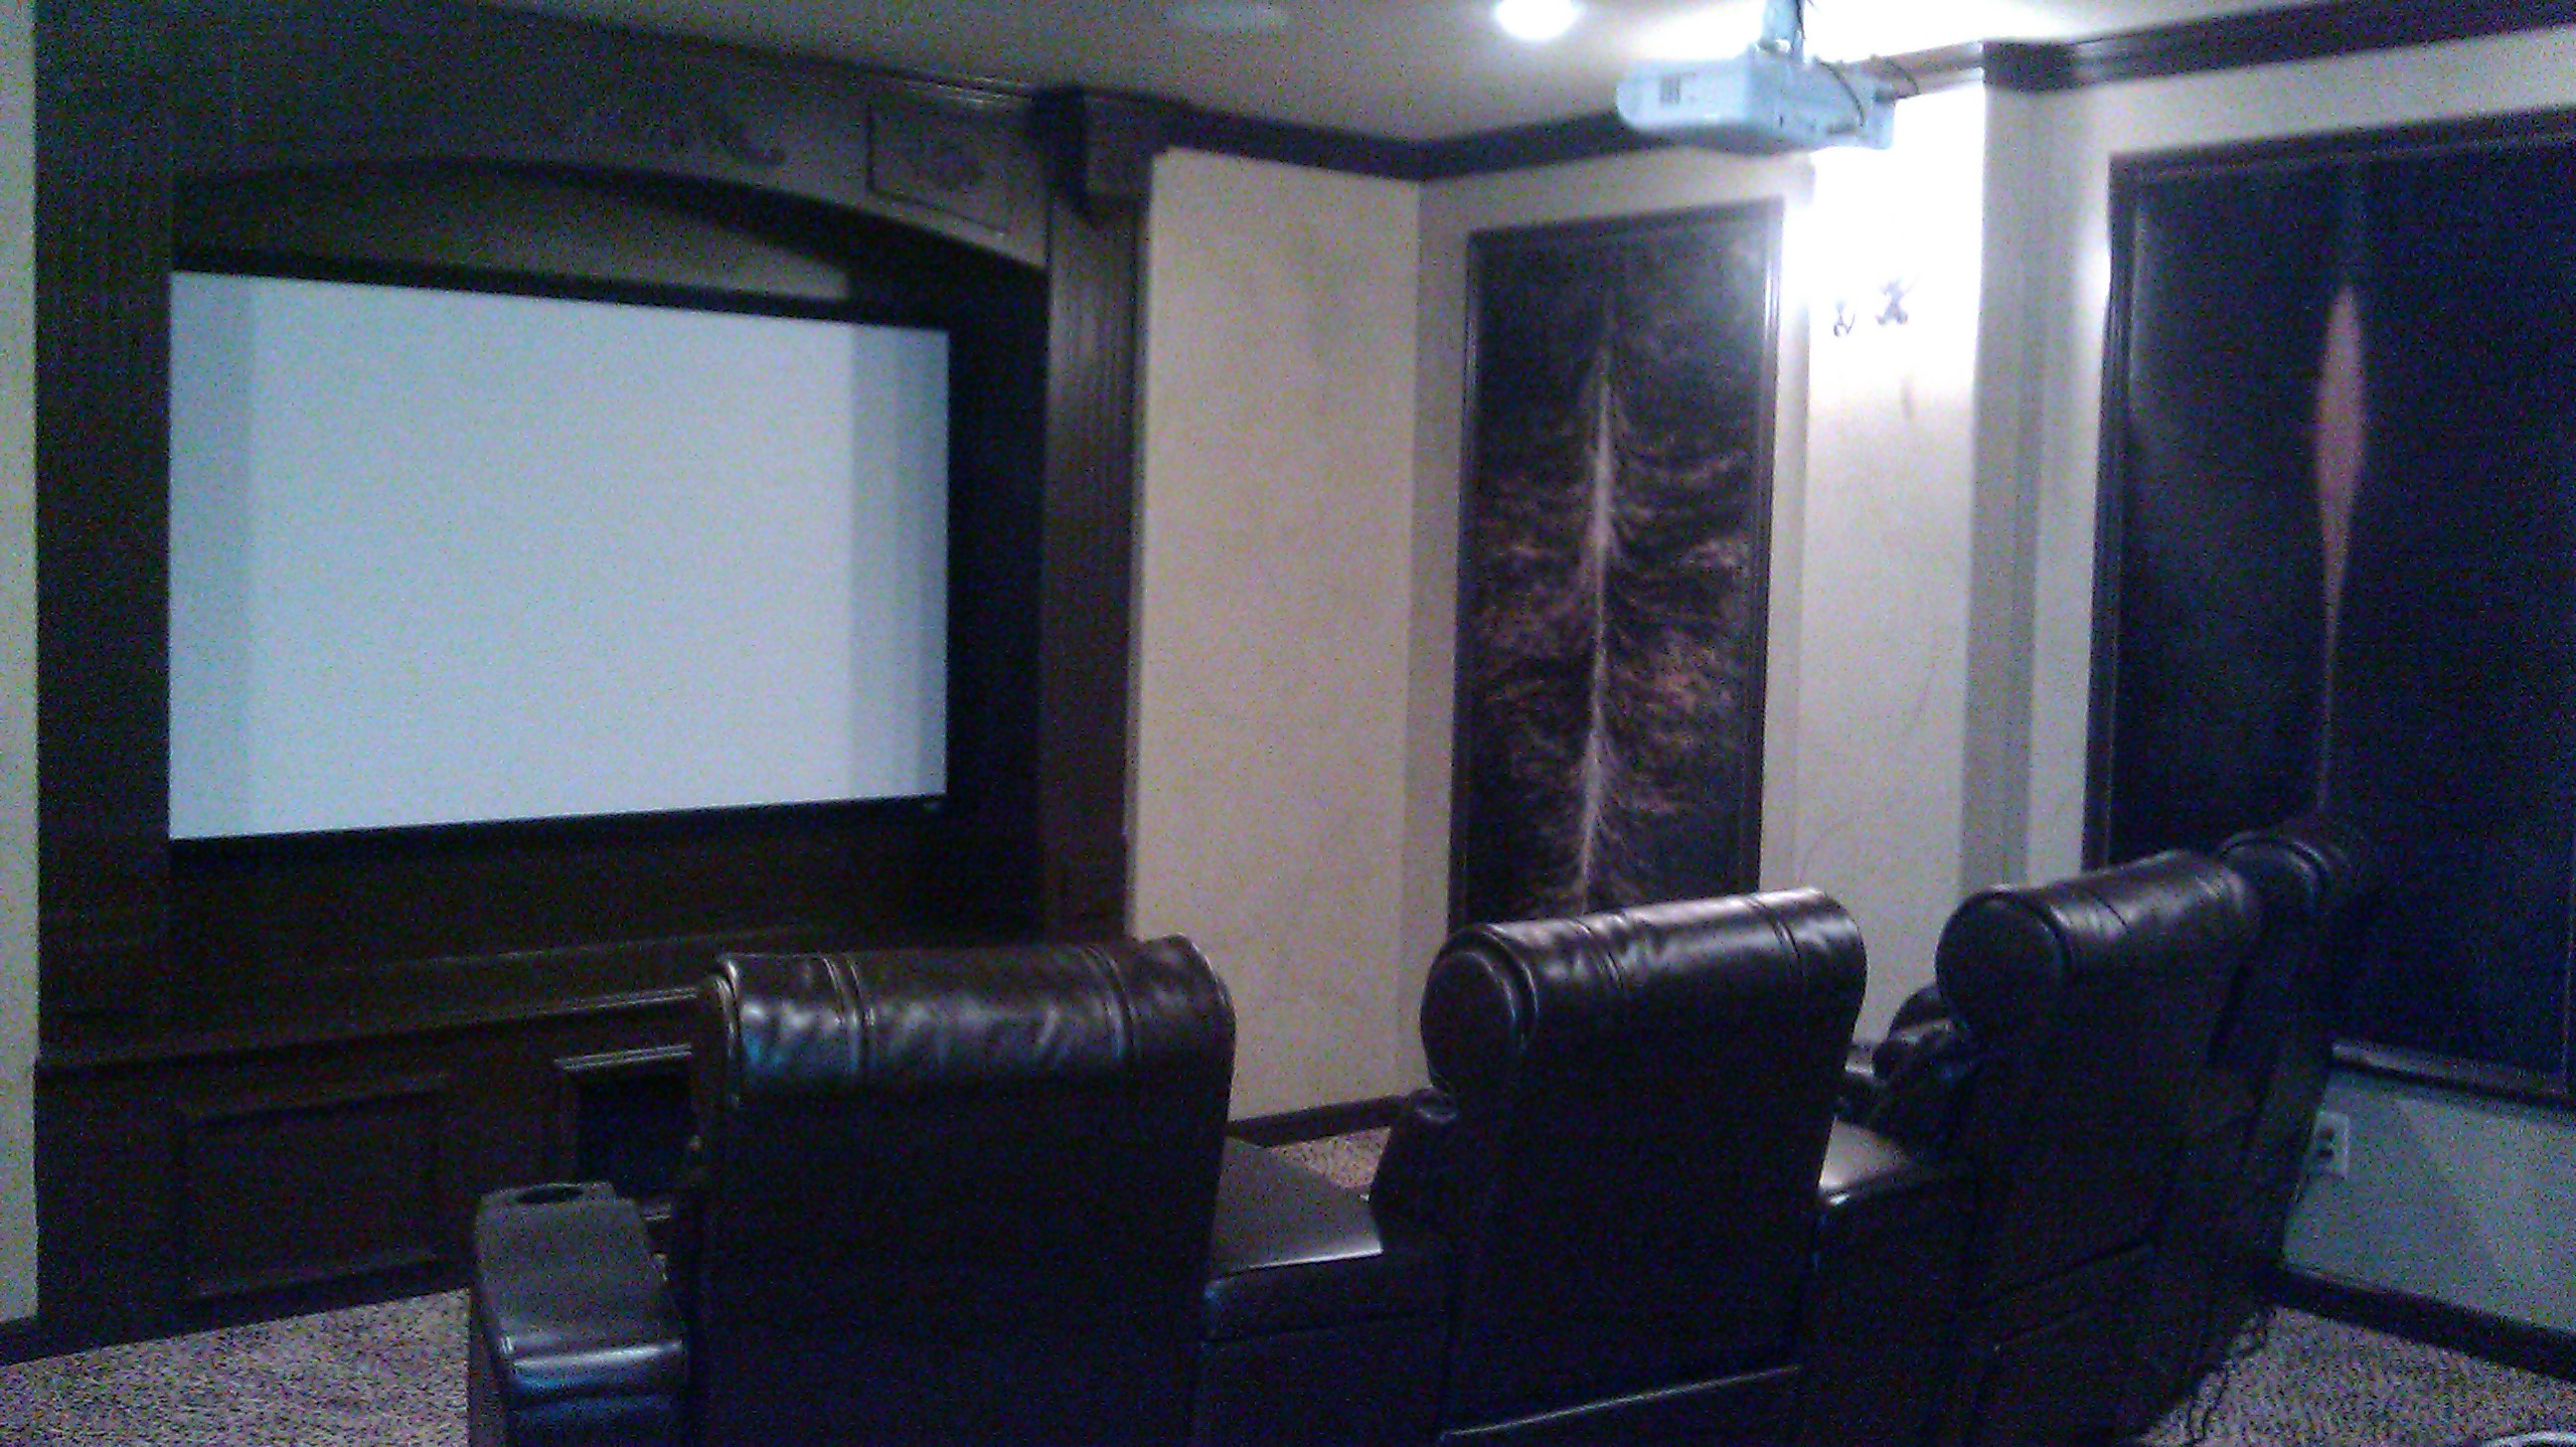 HomeTheaterInstallationHIghlandVillage